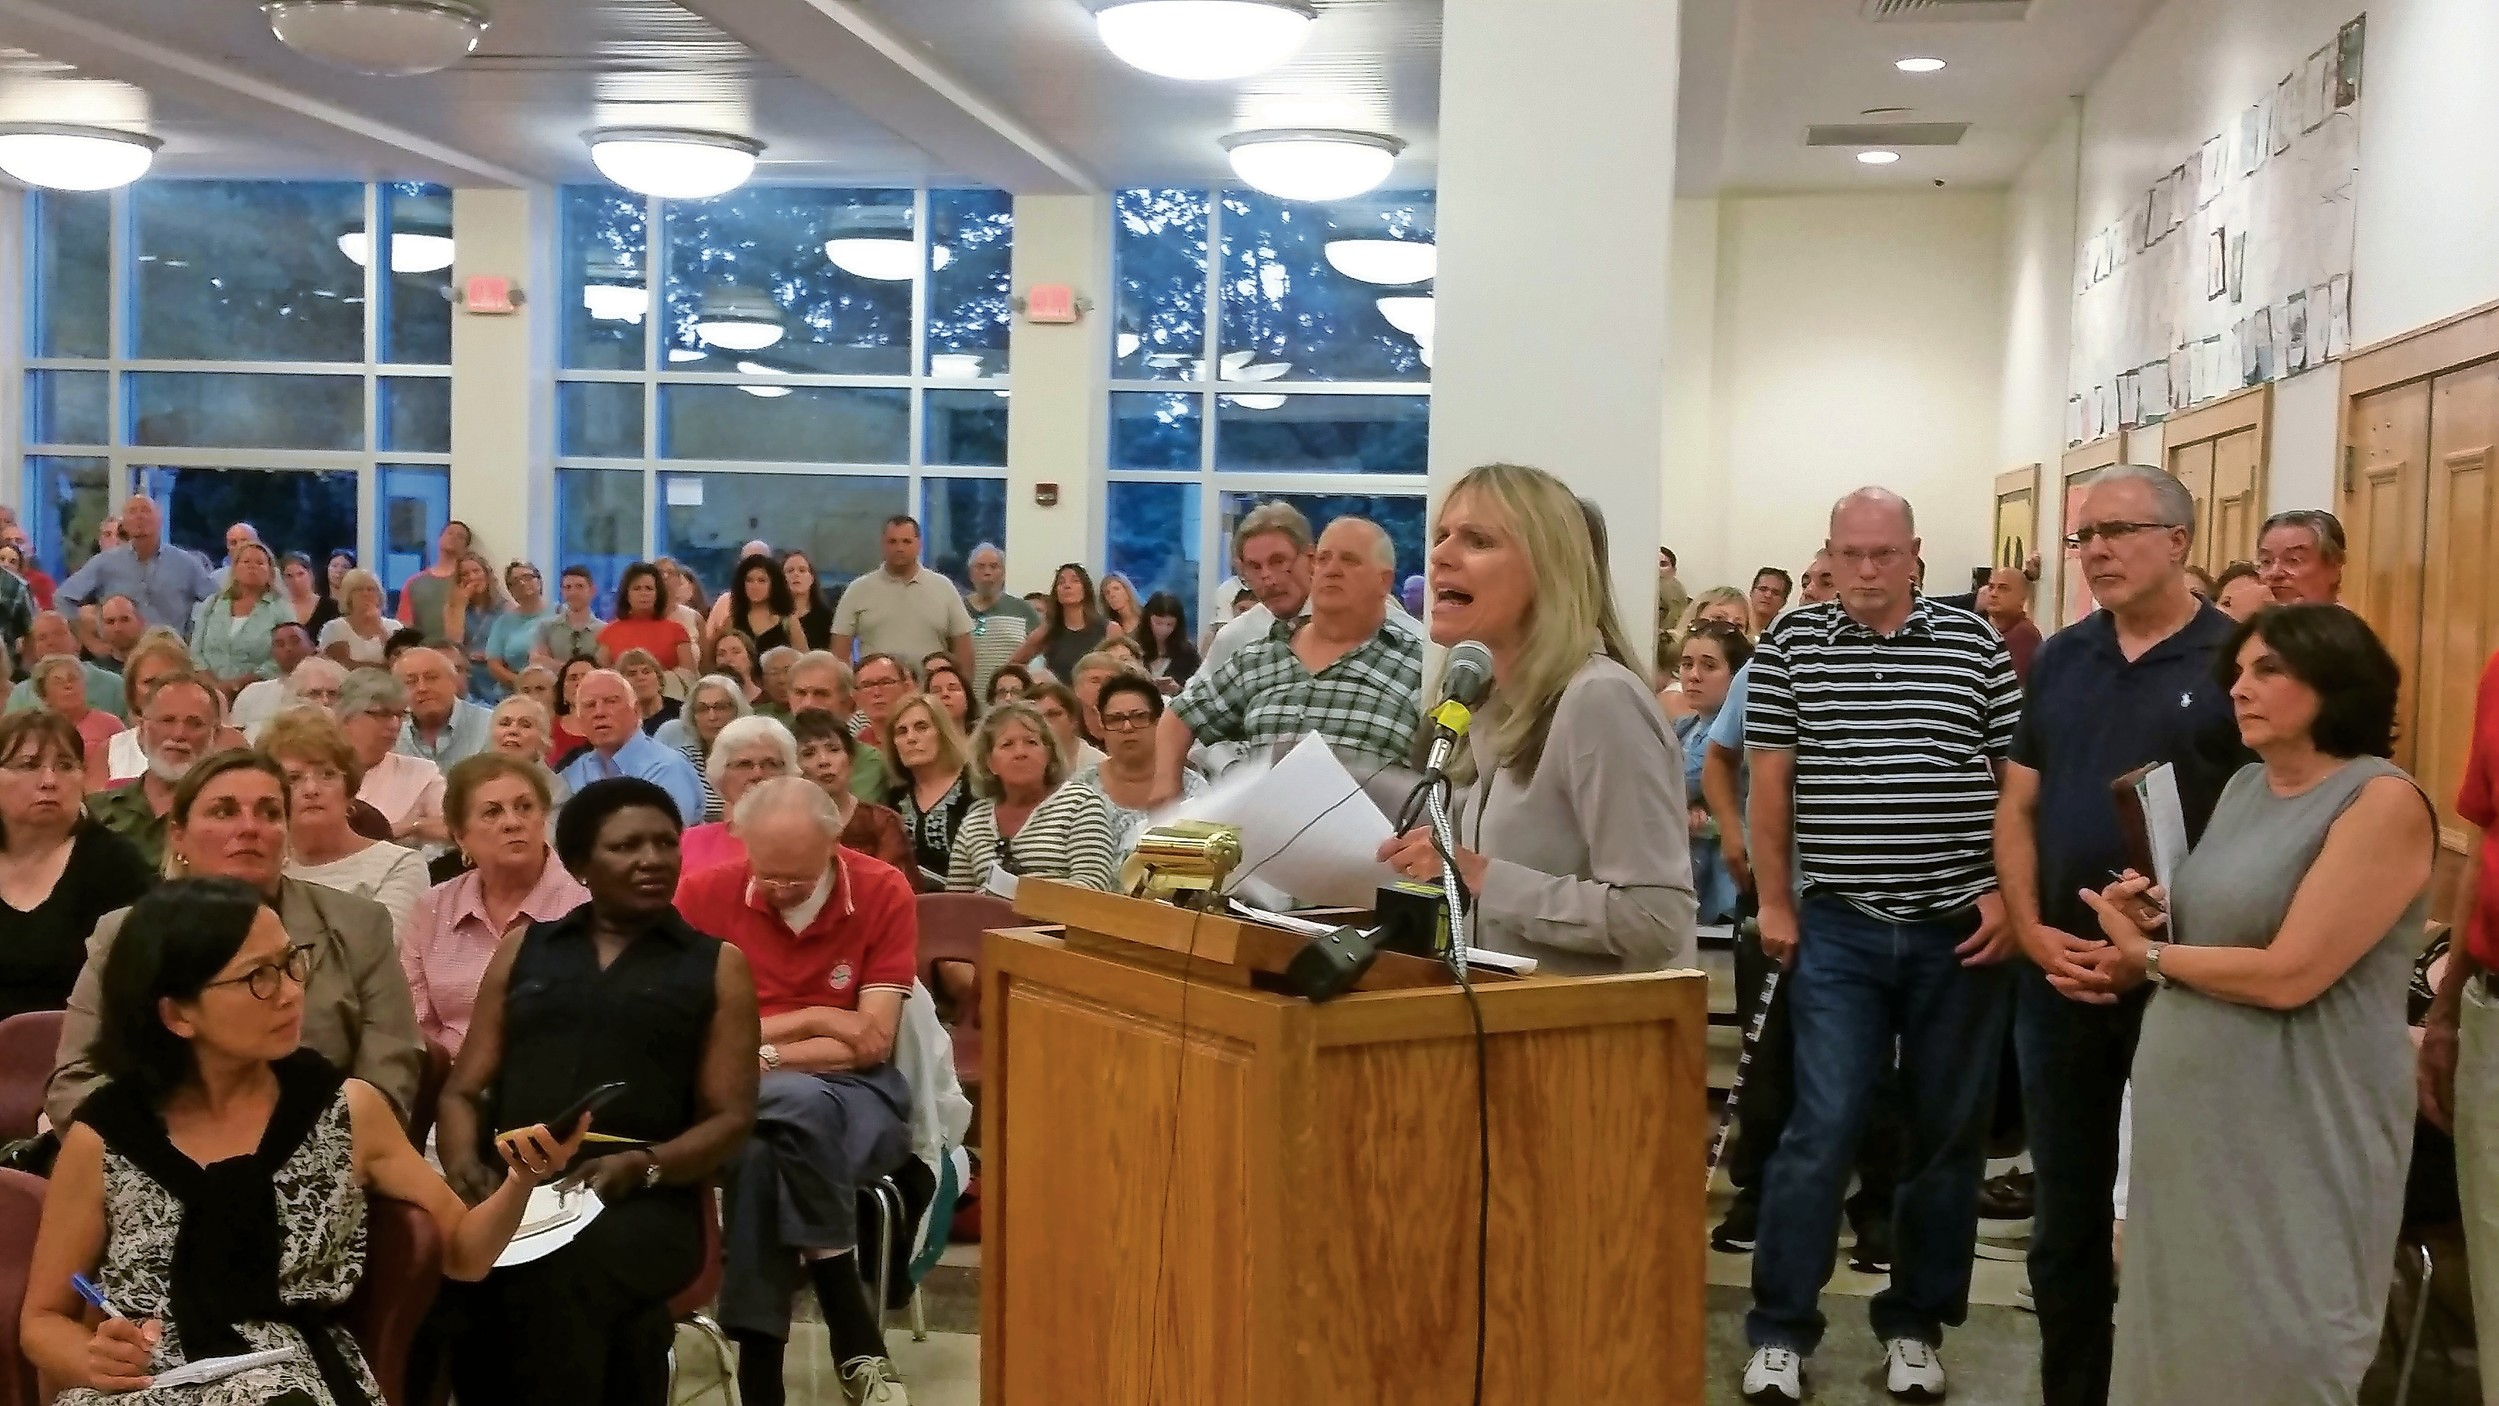 Agatha Nadel, a lifelong resident of Glen Head, was one of many residents who voiced concerns on Aug. 9 at a public meeting to address a recent steep increase in New York American Water's bills.